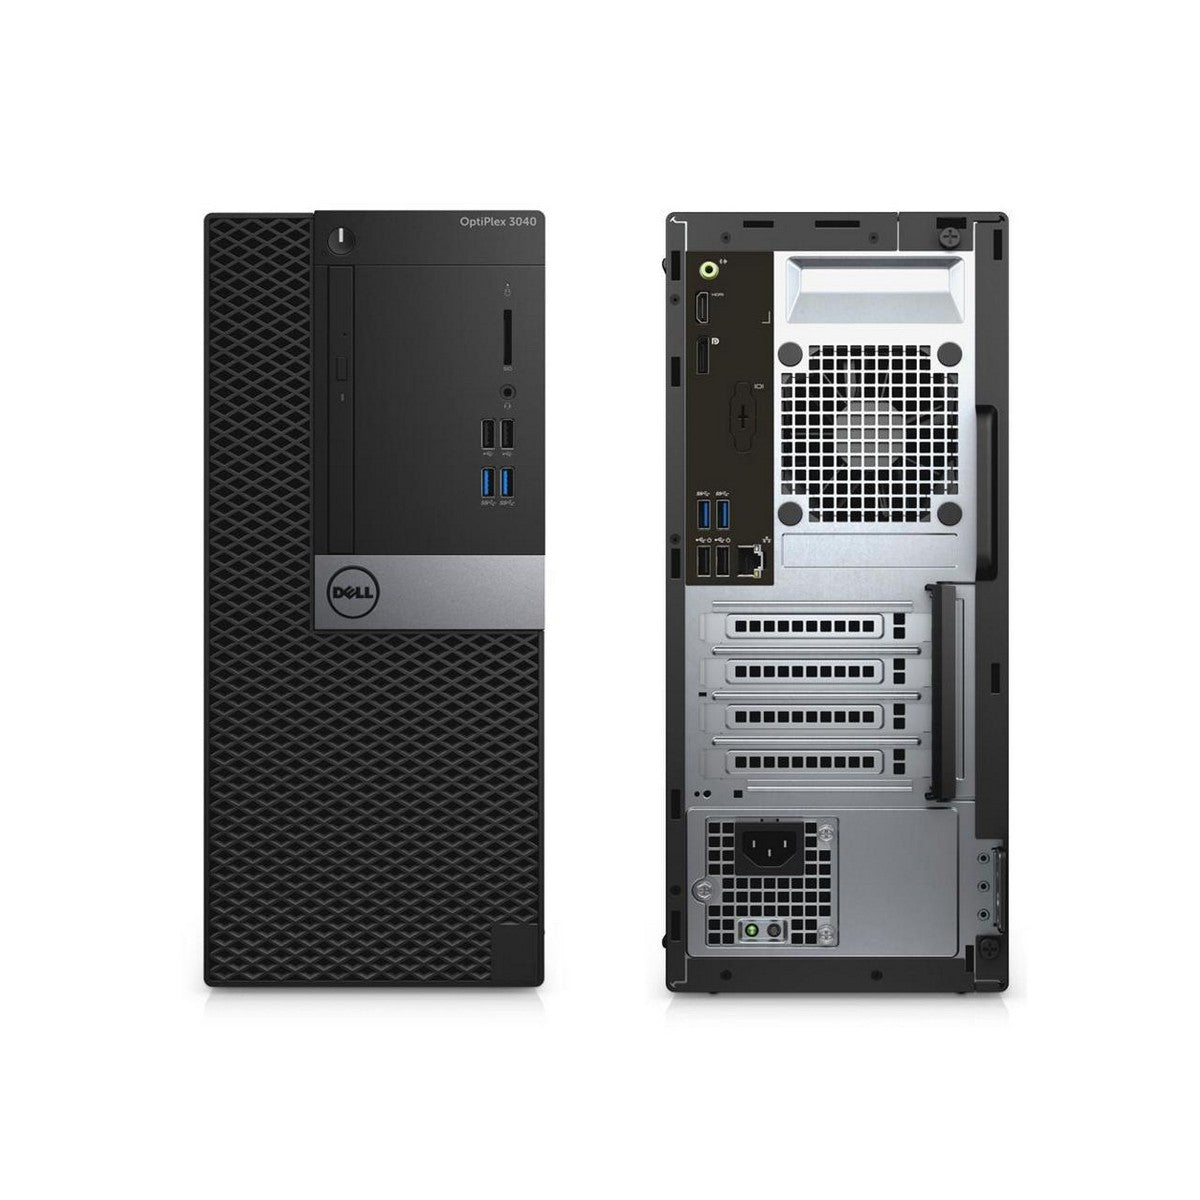 Used Dell OptiPlex 3040 Mini Tower Desktop, Intel Core i5 i5-6500, 4GB RAM, 500GB HDD